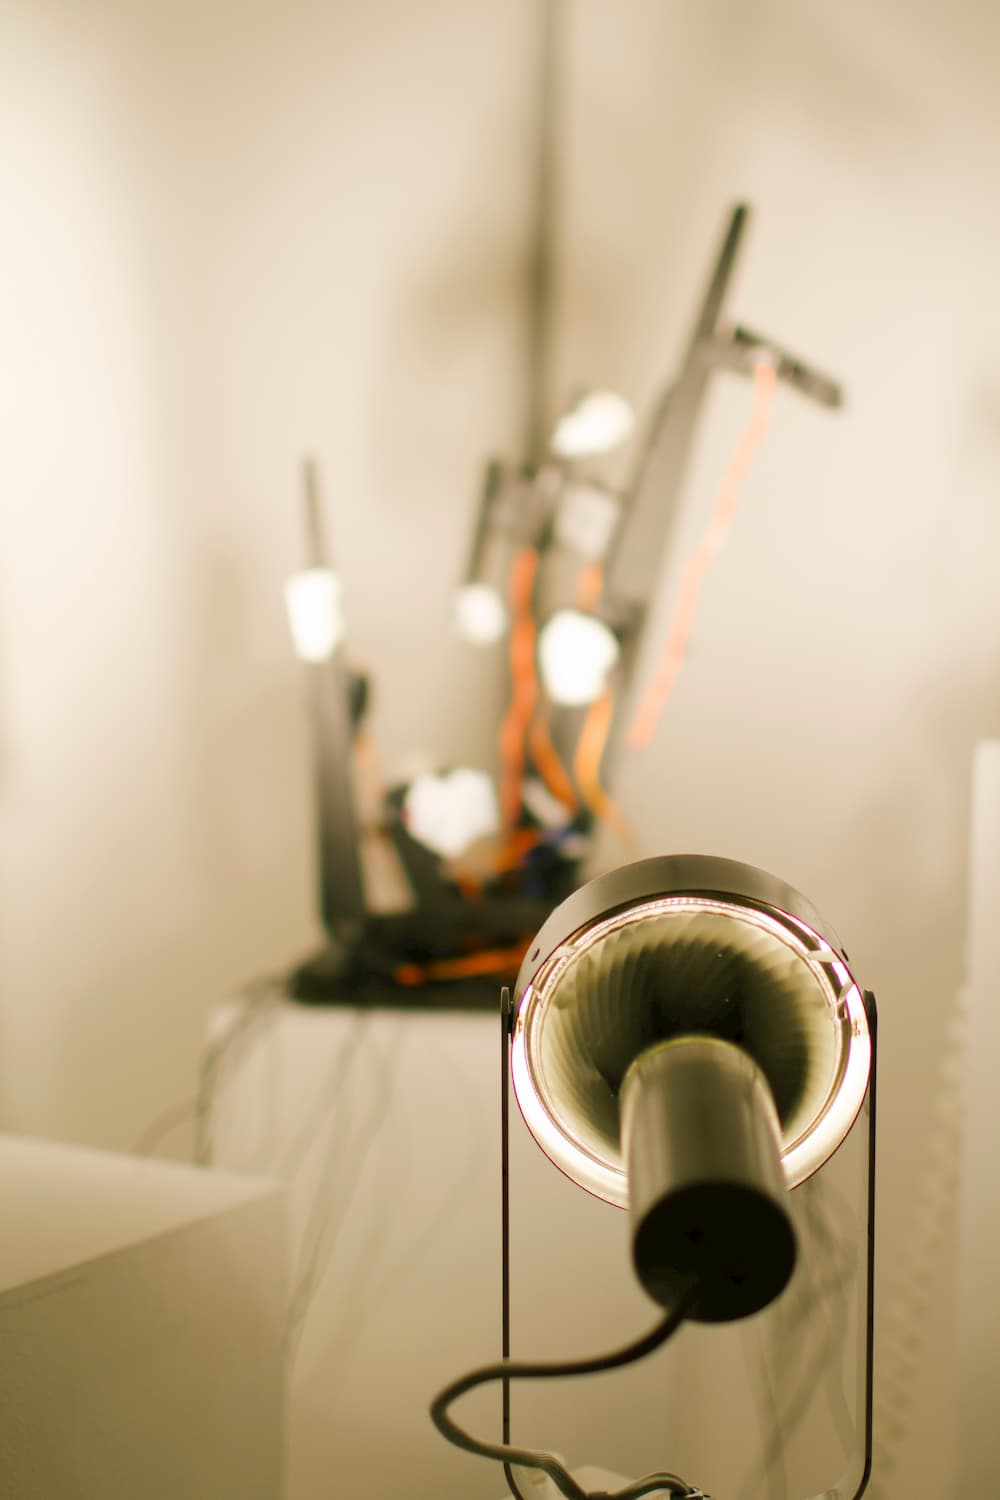 Lamp aimed at a sculpture during YOUJIN CHUNG's solo show.